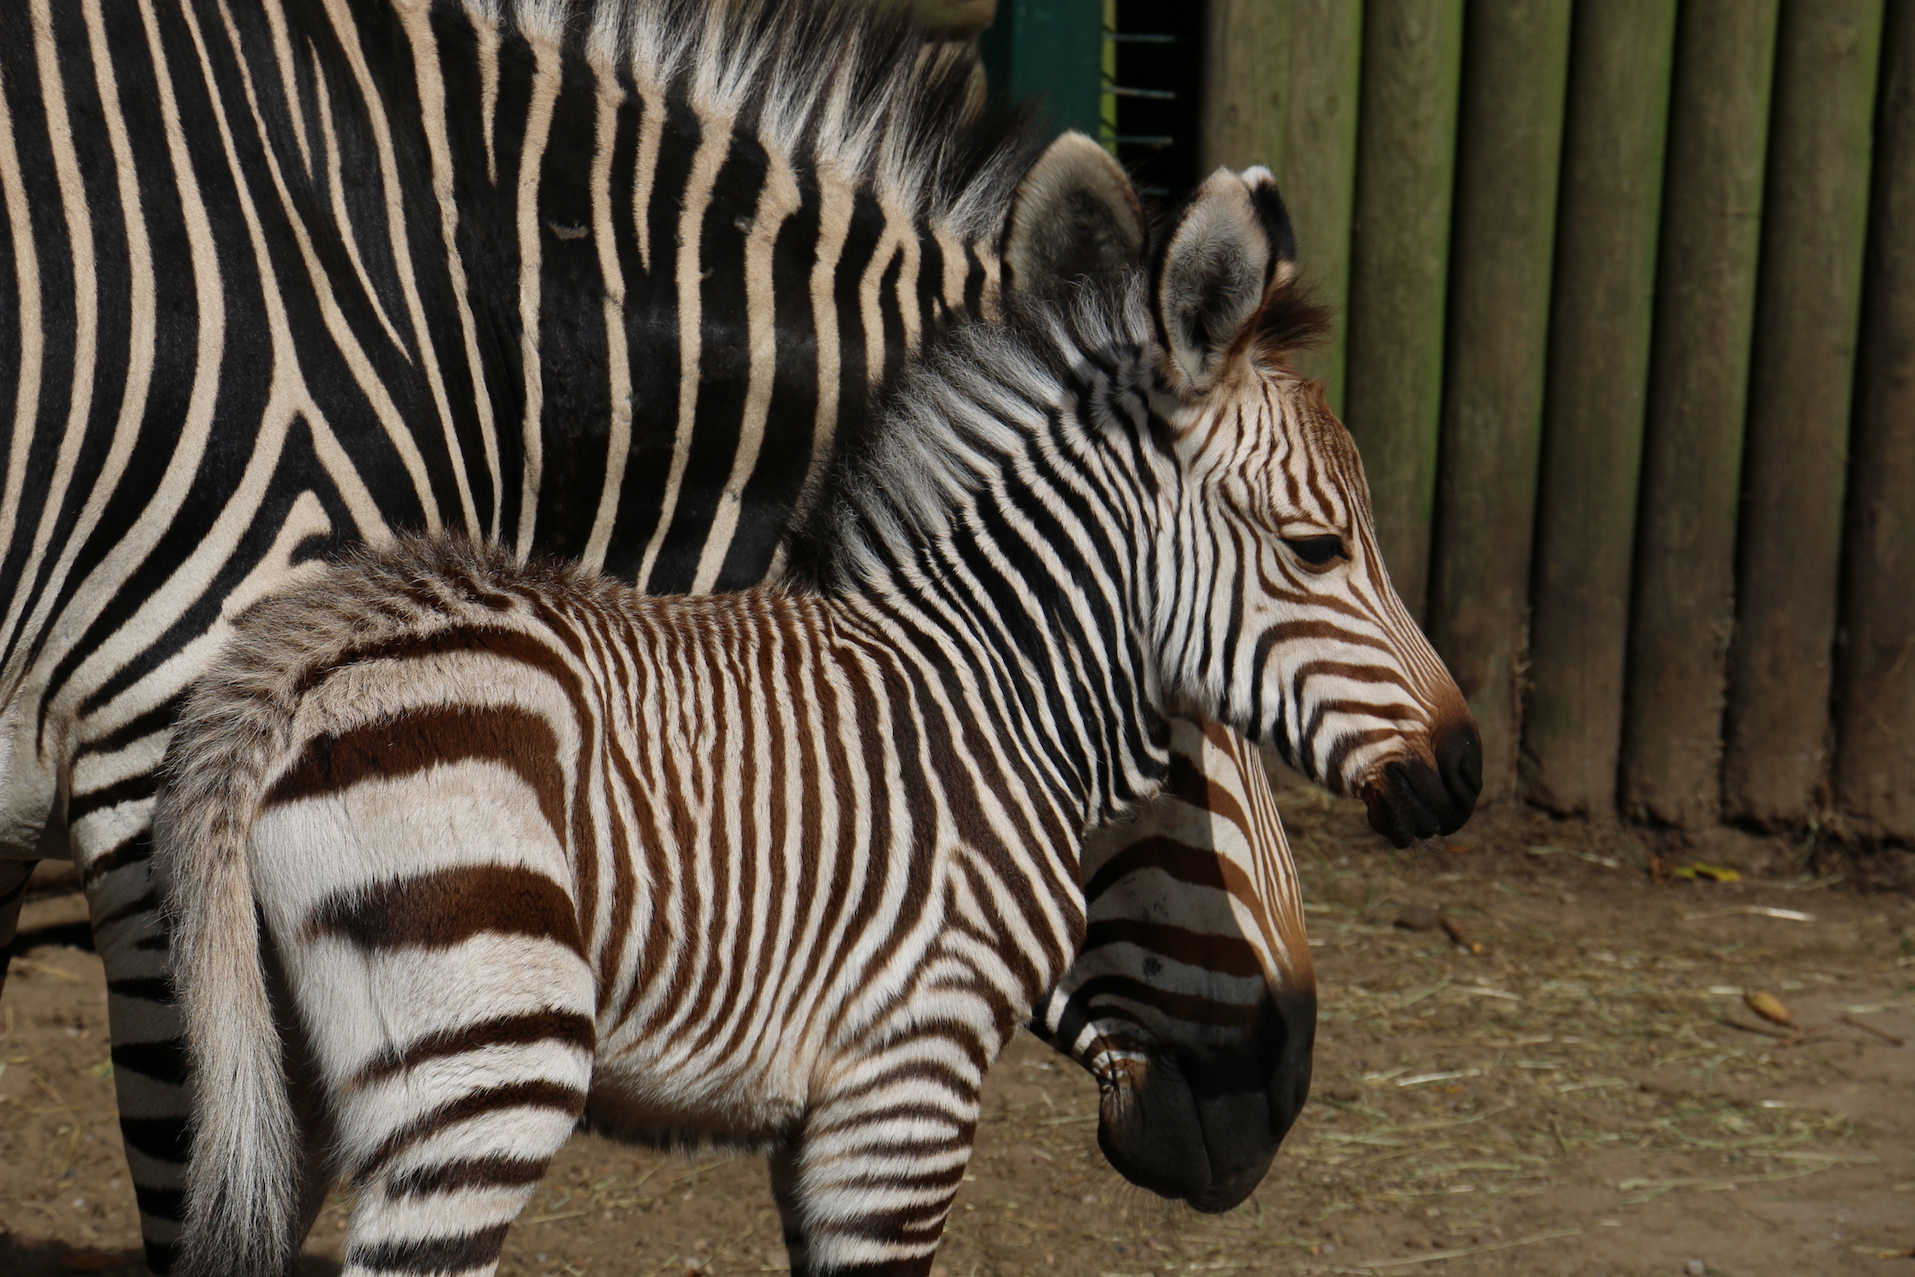 Miracle star - with stripes - makes zoo debut!